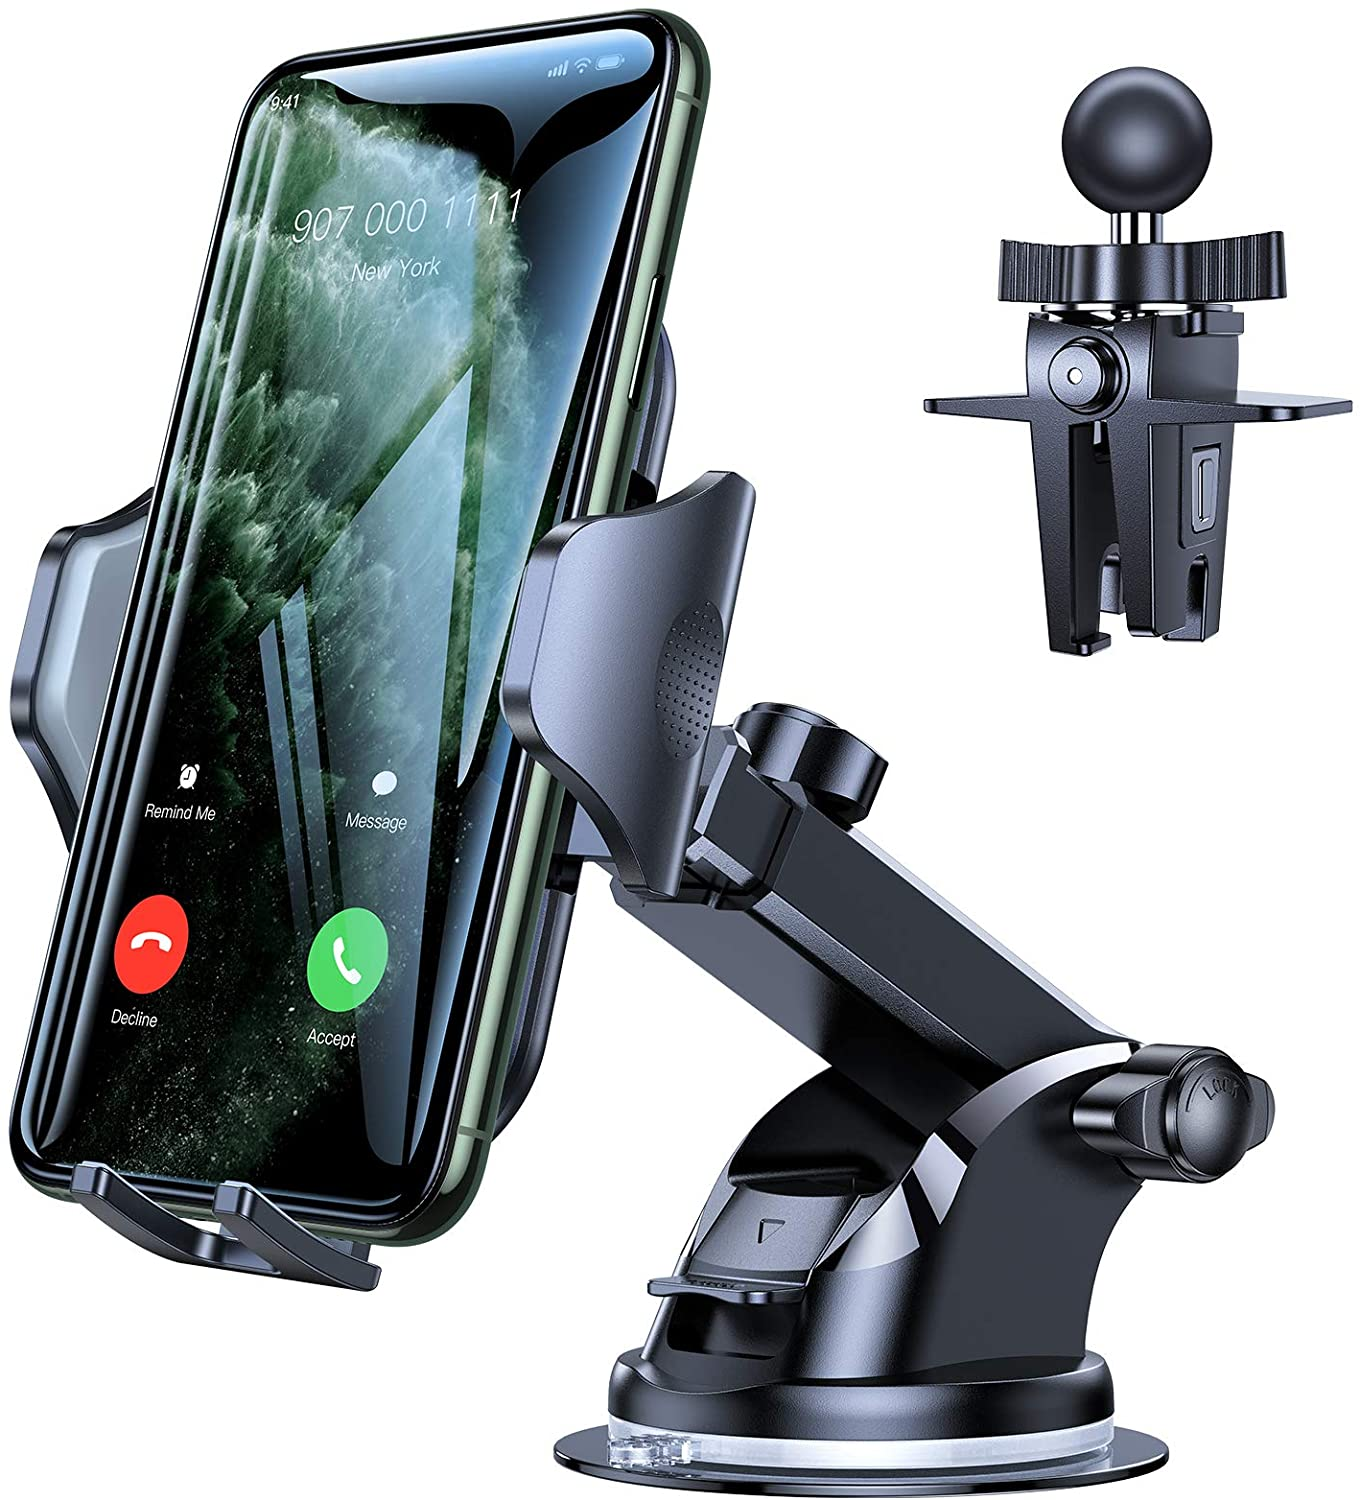 Save 5% on VICSEED Car Phone Mount, Long Suction Cup Phone Holder